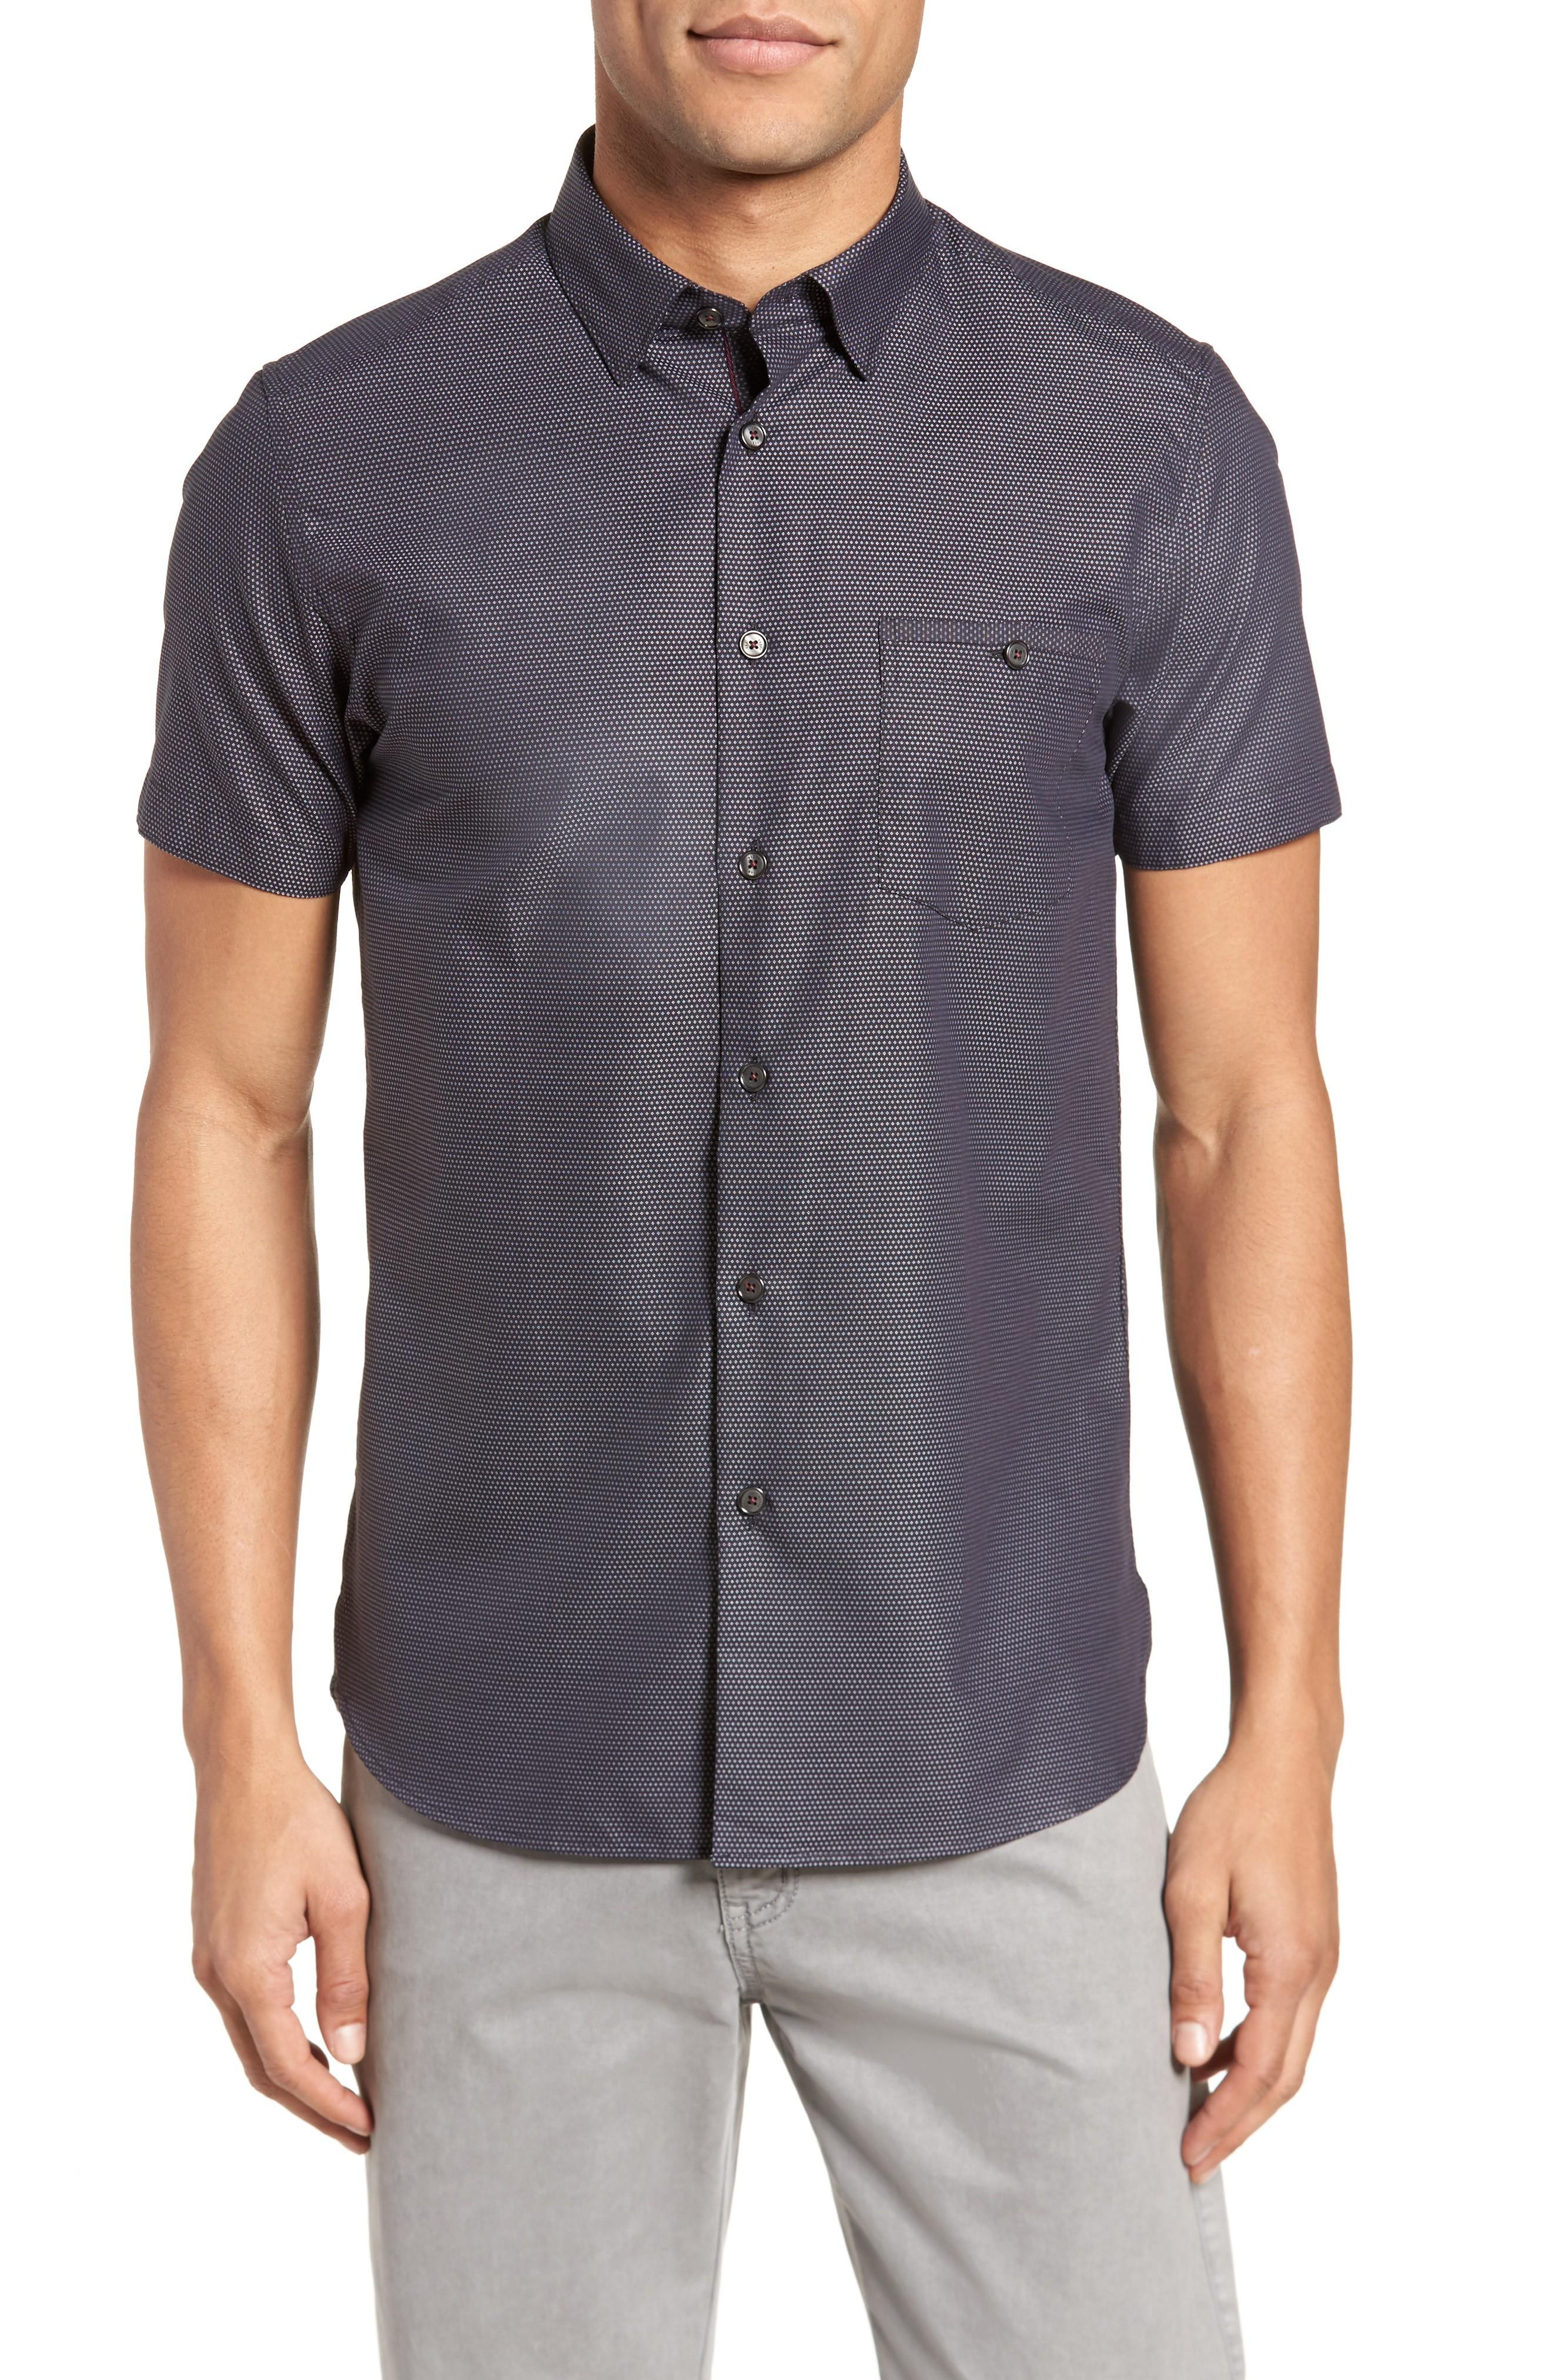 7935fed48f8460 ... dot grid defines a laid-back sport shirt cut from breezy cotton and  fitted with lustrous contrast buttons. Style Name  Ted Baker London Dotdots Trim  Fit ...